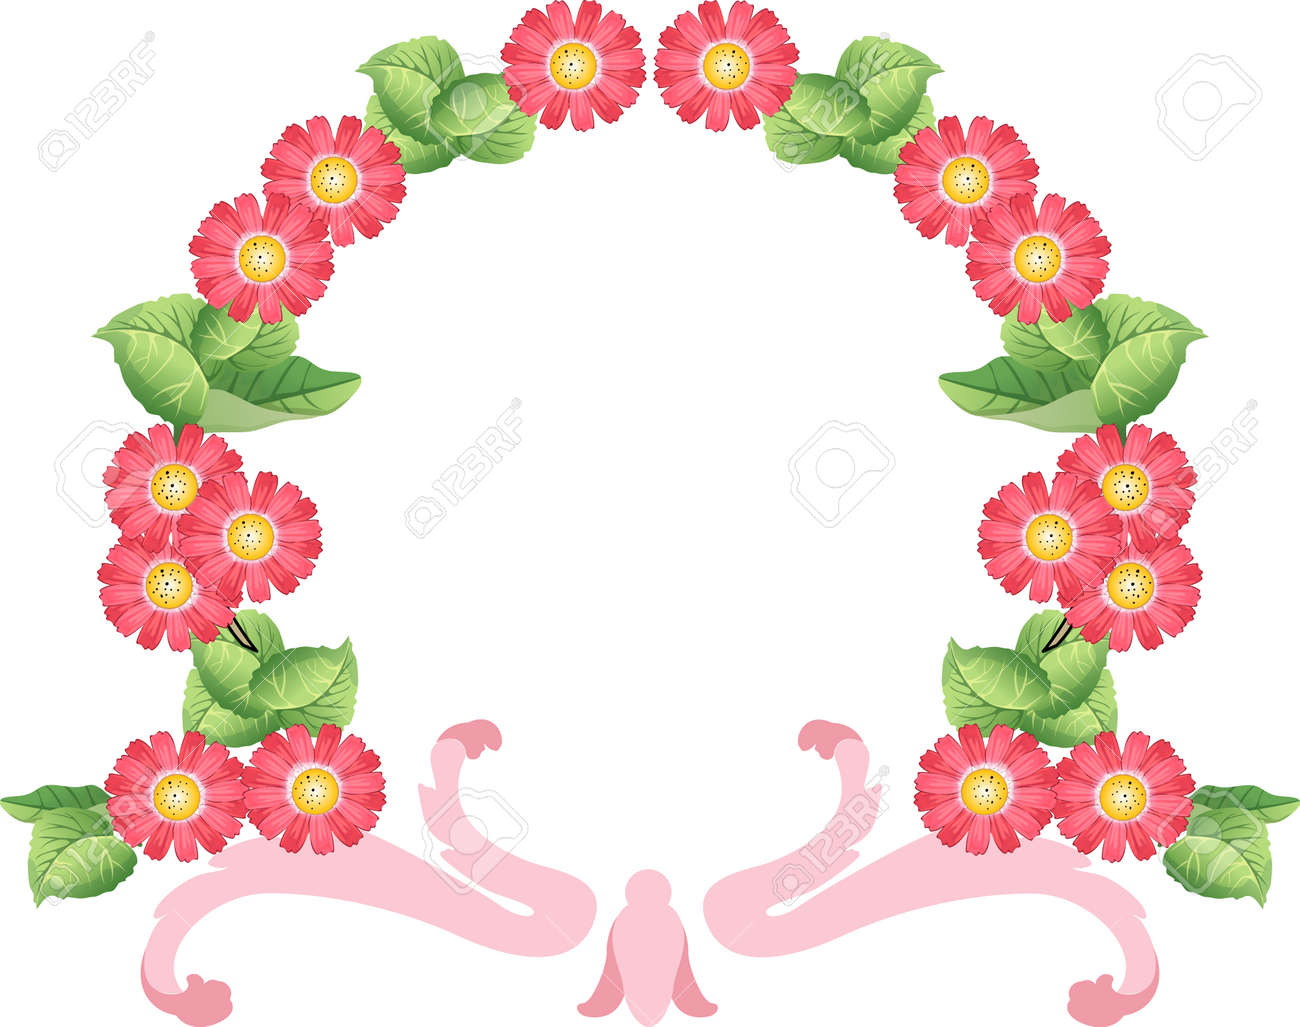 Flowers. Stock Vector - 6716765